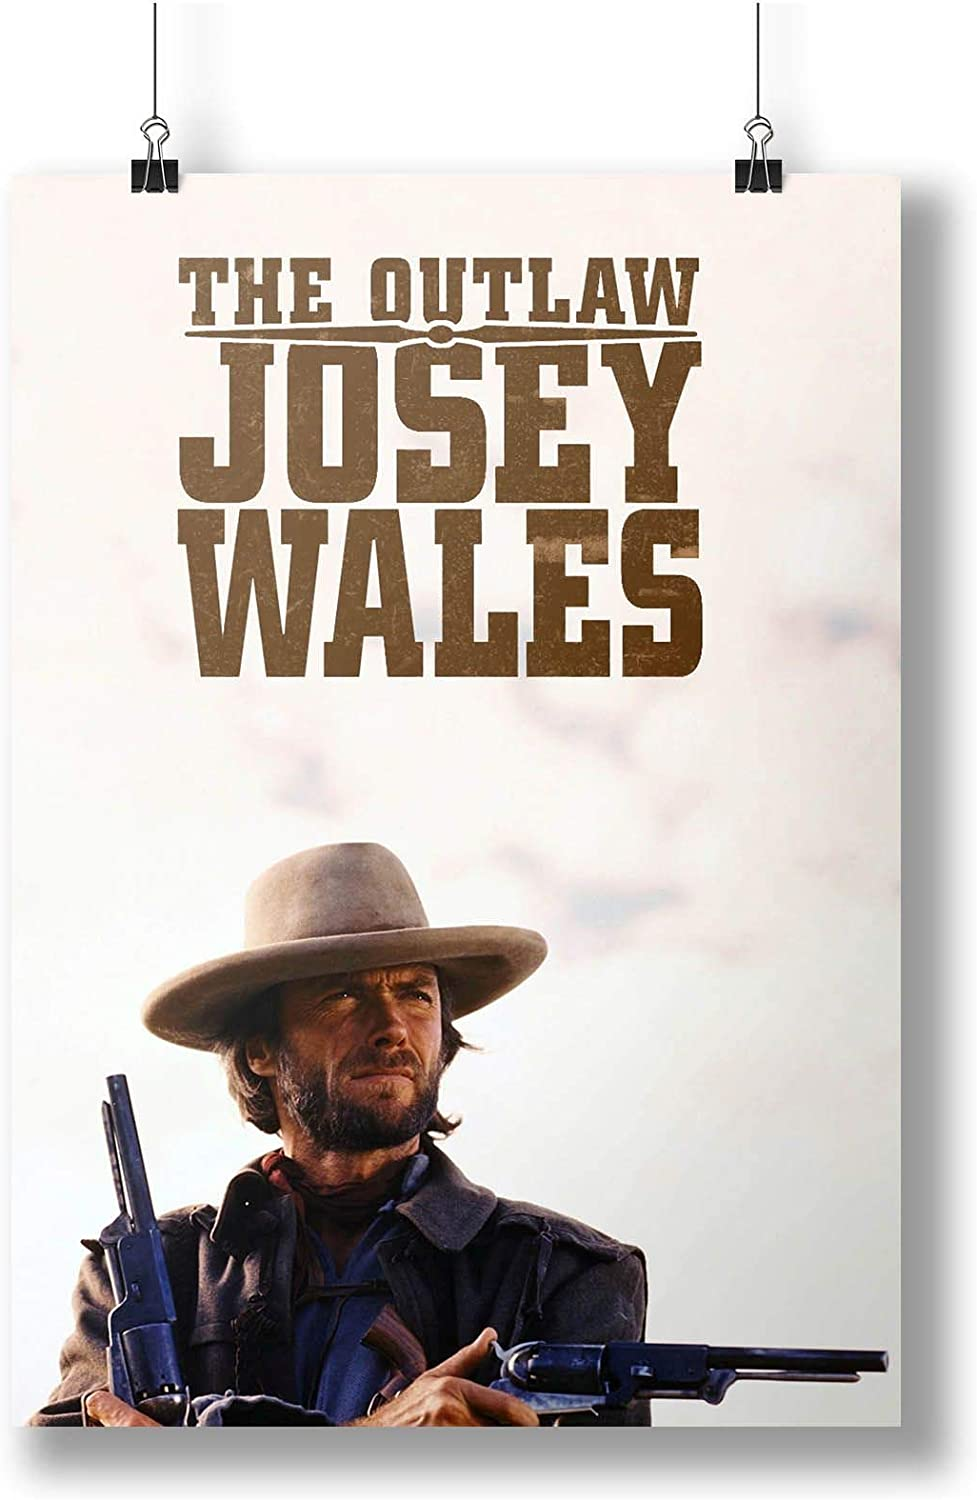 INNOGLEN 1976 The Outlaw Josey Wales Film Movie A0 A1 A2 A3 A4 Satin Photo Poster p10422h